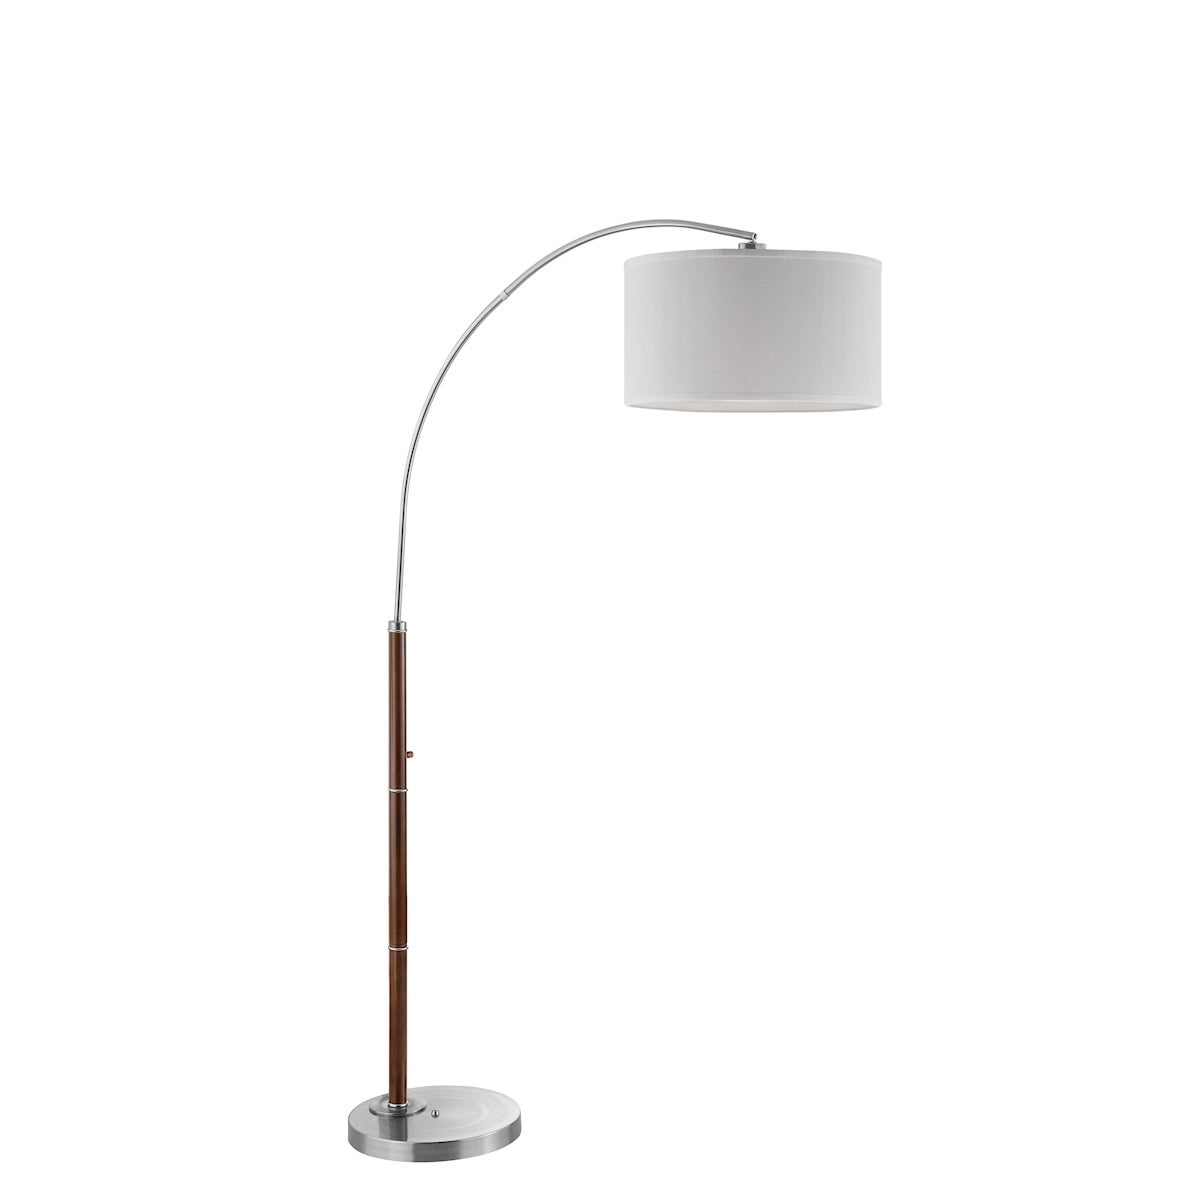 Image of: Shop Black Friday Deals On Archy Arc Floor Lamp Overstock 11963271